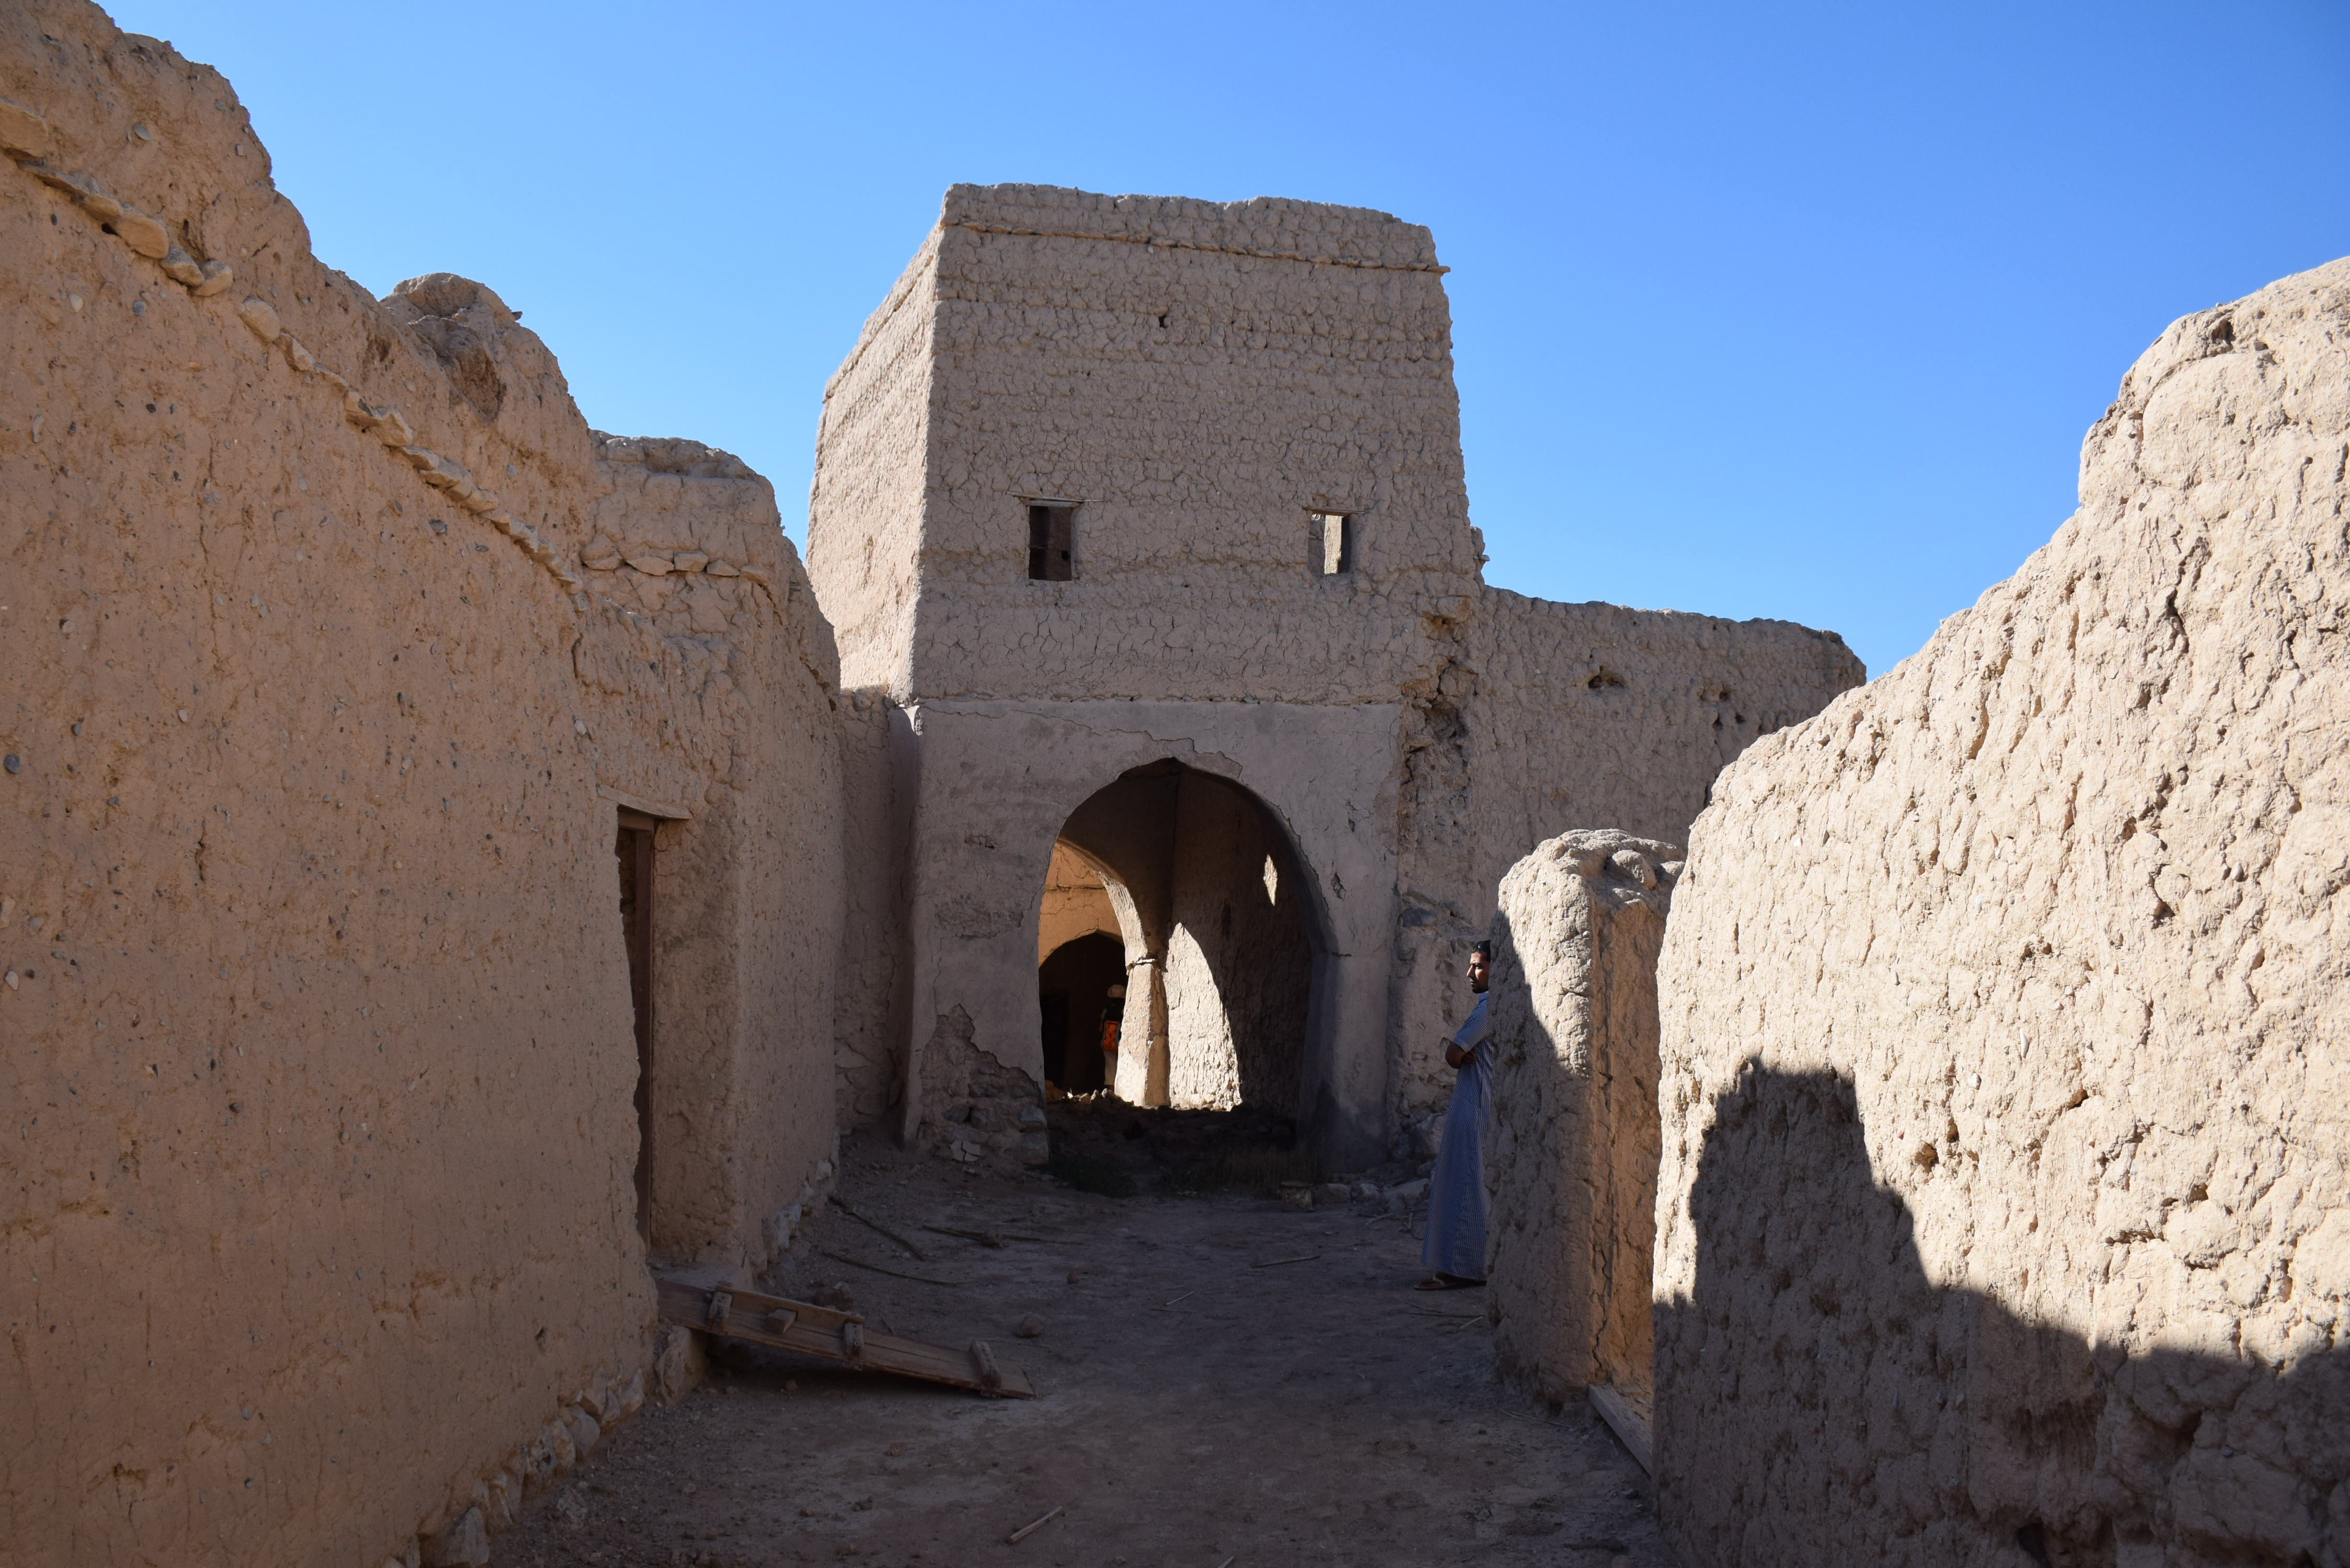 Oman, mud houses, traditional architecture